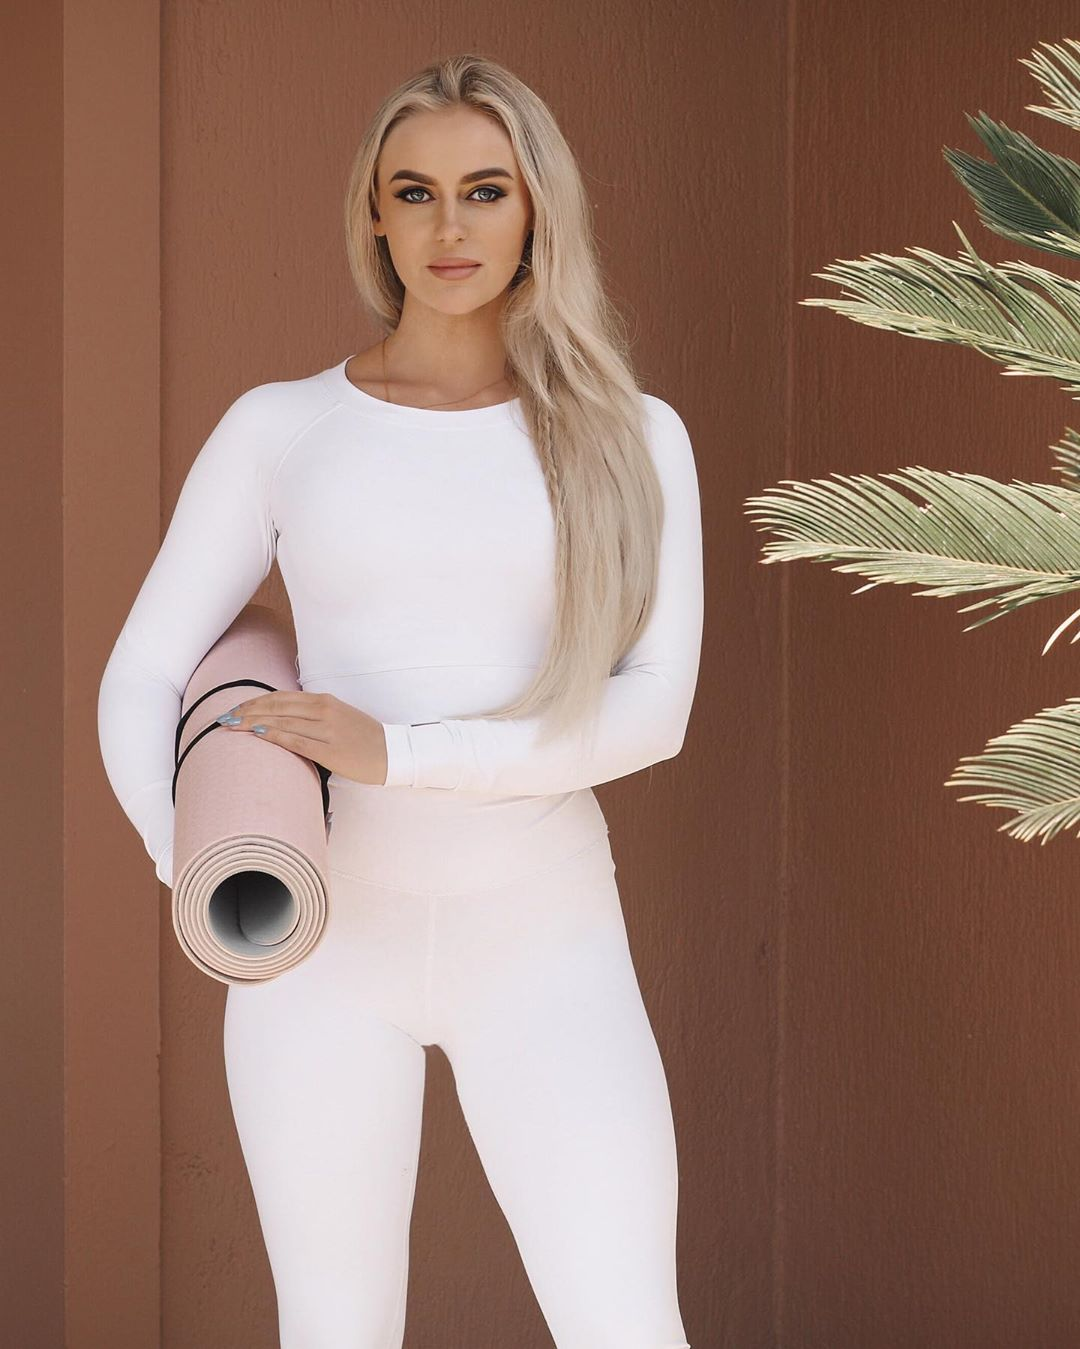 Anna-Nystrom-Wallpapers-Insta-Fit-Bio-1